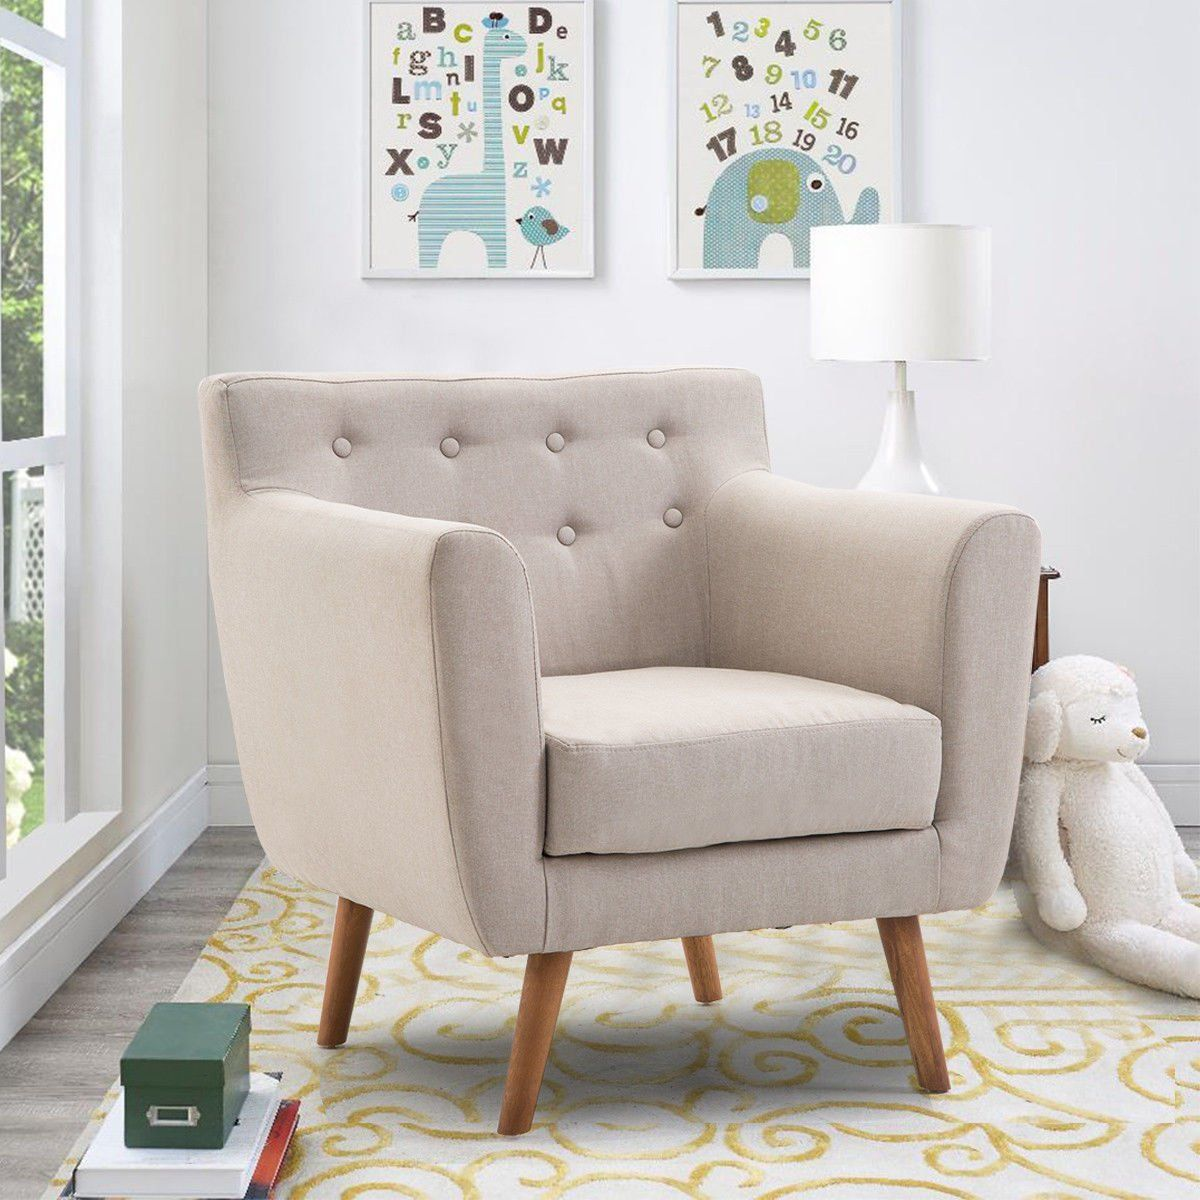 Giantex Tufted Arm Chair Fabric Upholstered Wood Leg Mid Century Sofa Accent Chair Beige Upholstered Accent Chairs Wood Sofa Living Room Chairs Cute chairs for living room